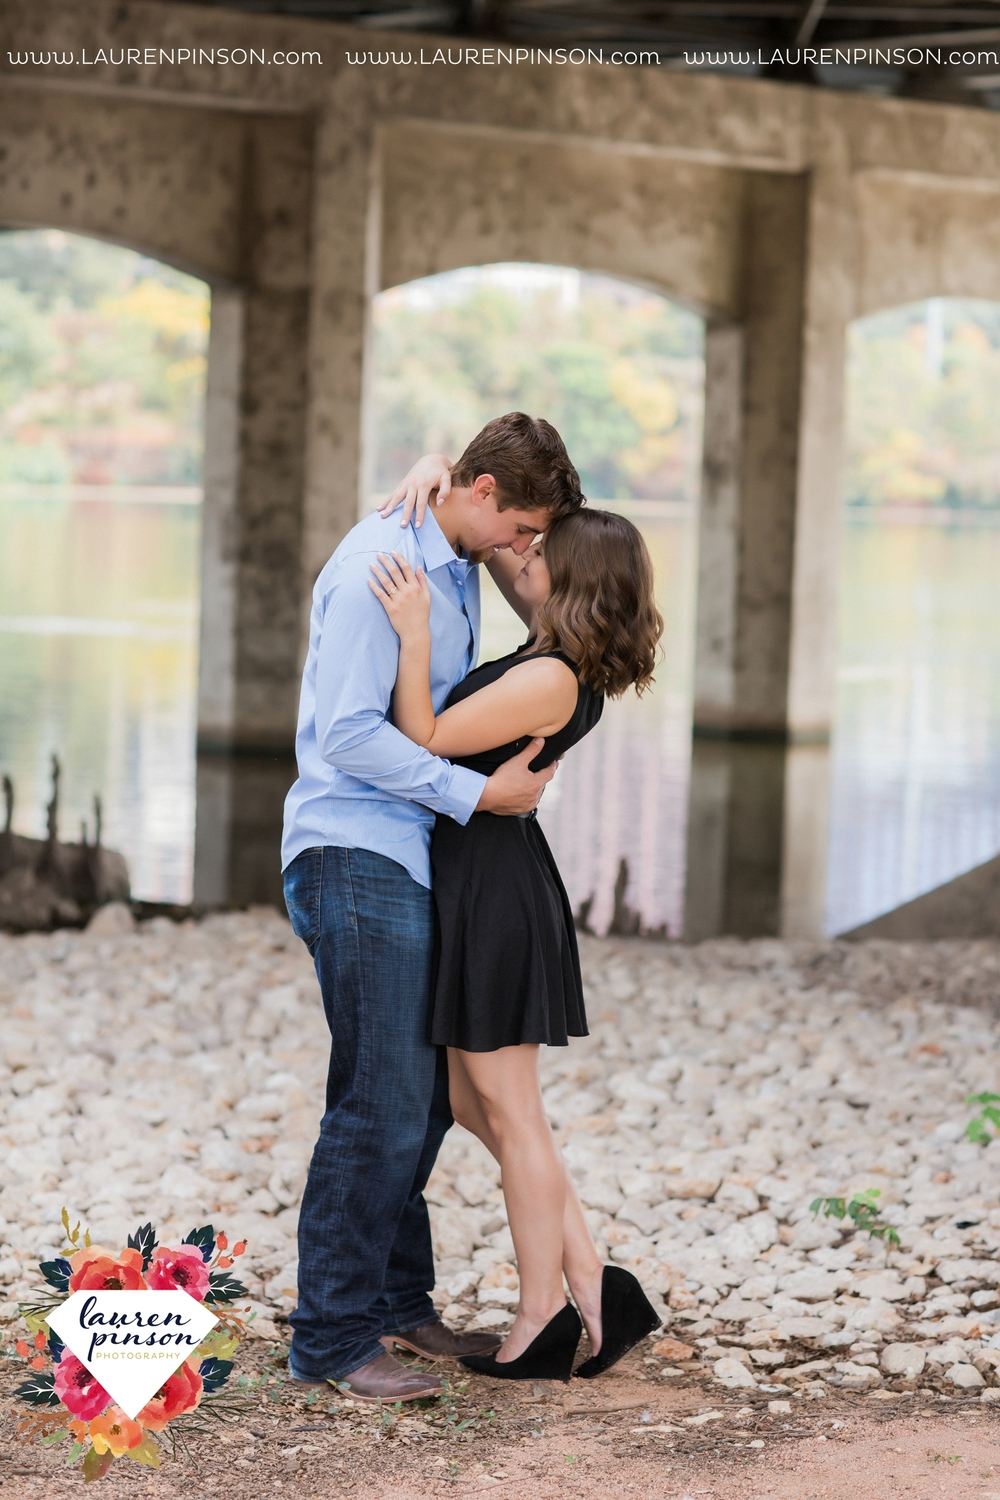 austin-texas-engagement-session-photography-by-wichita-falls-wedding-photgraphy-lauren-pinson_1397.jpg